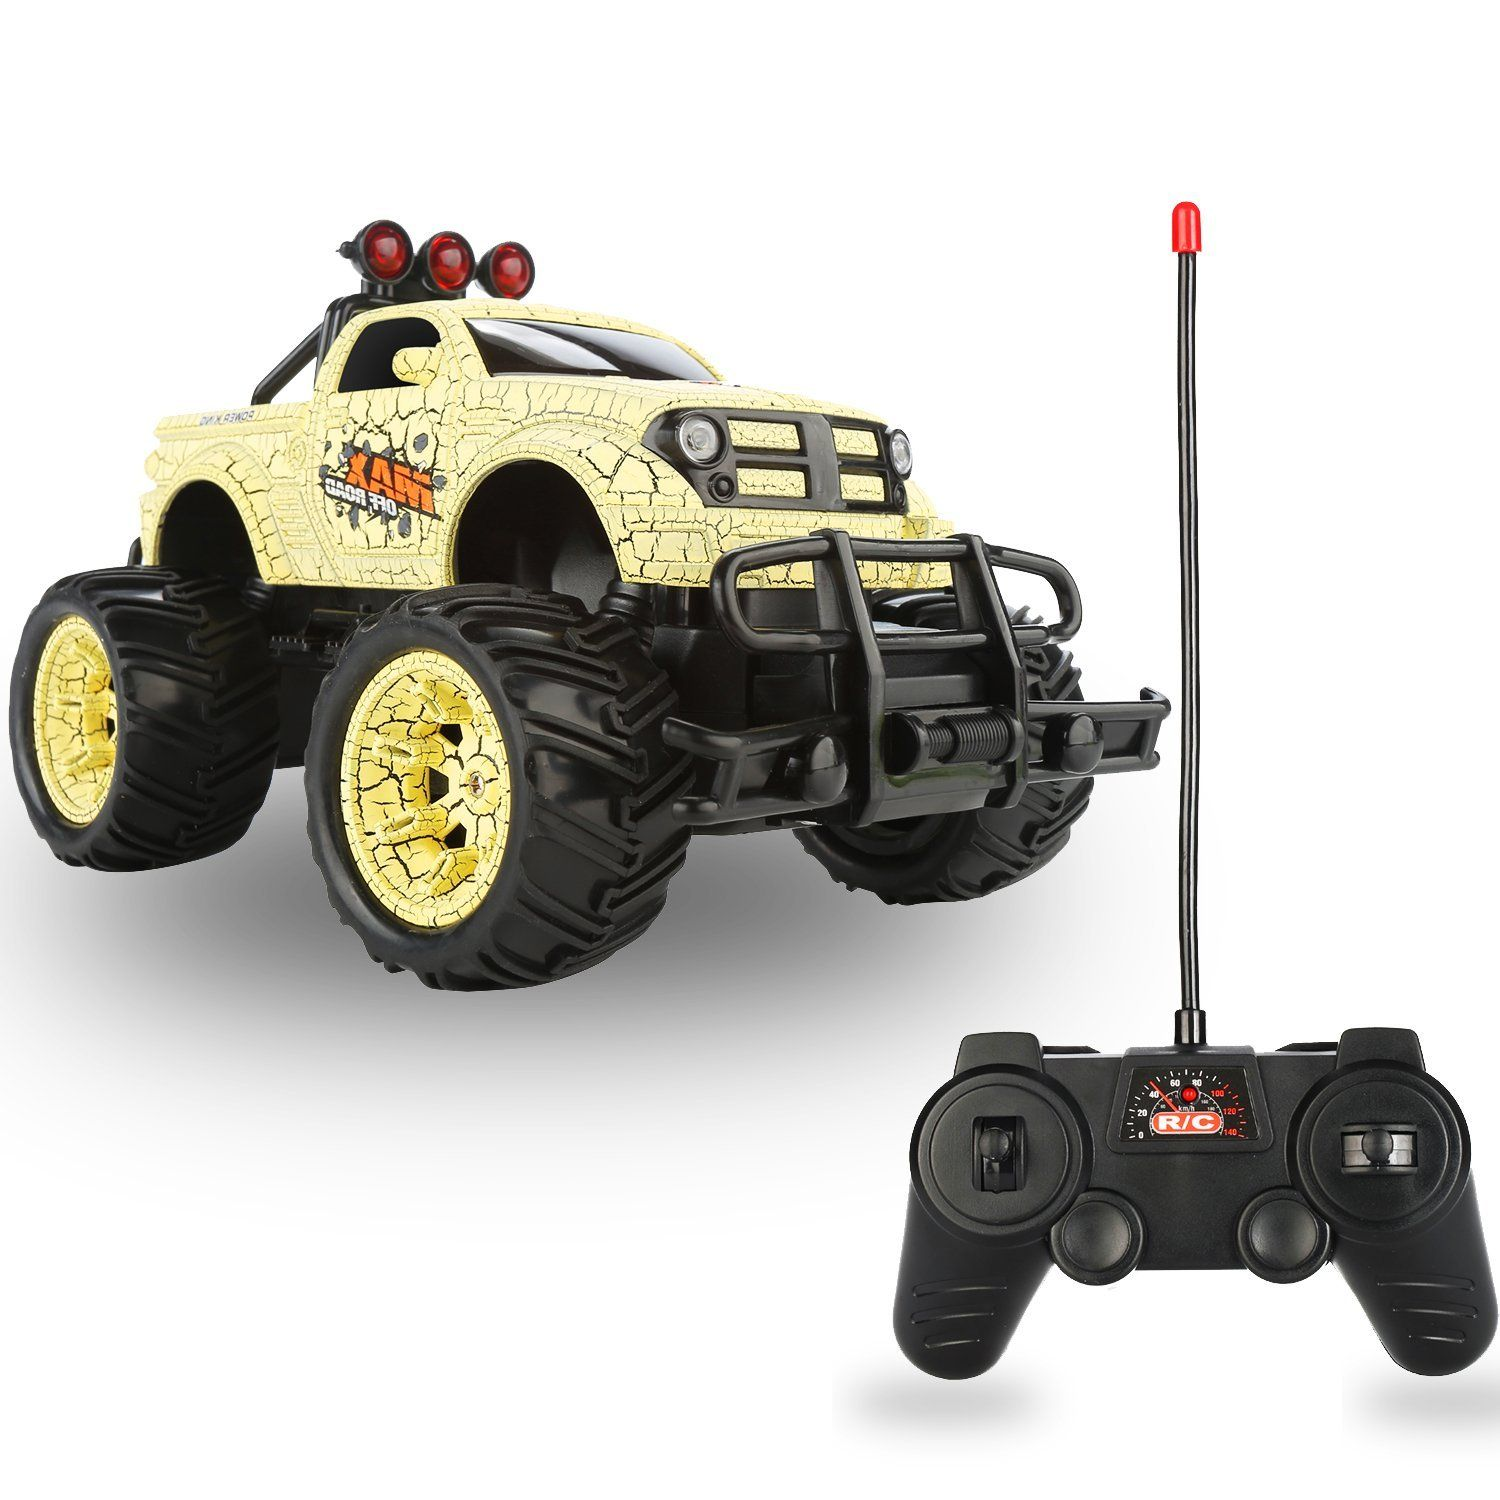 QuadPro Remote Control Monster Truck ONLY 21.99